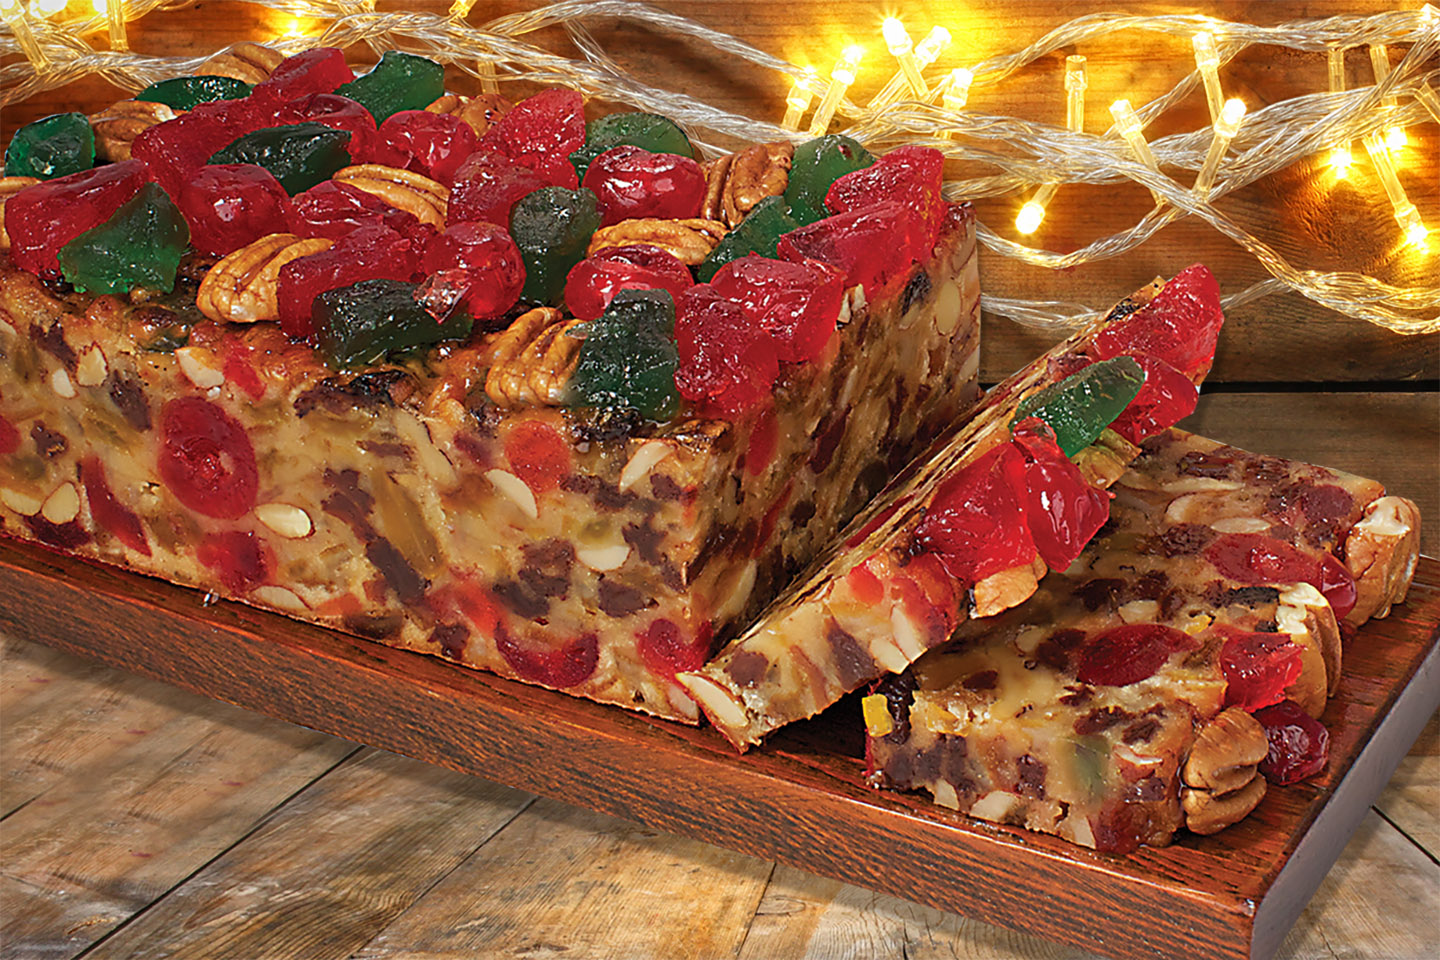 Best Fruit Cake In The World Recipe